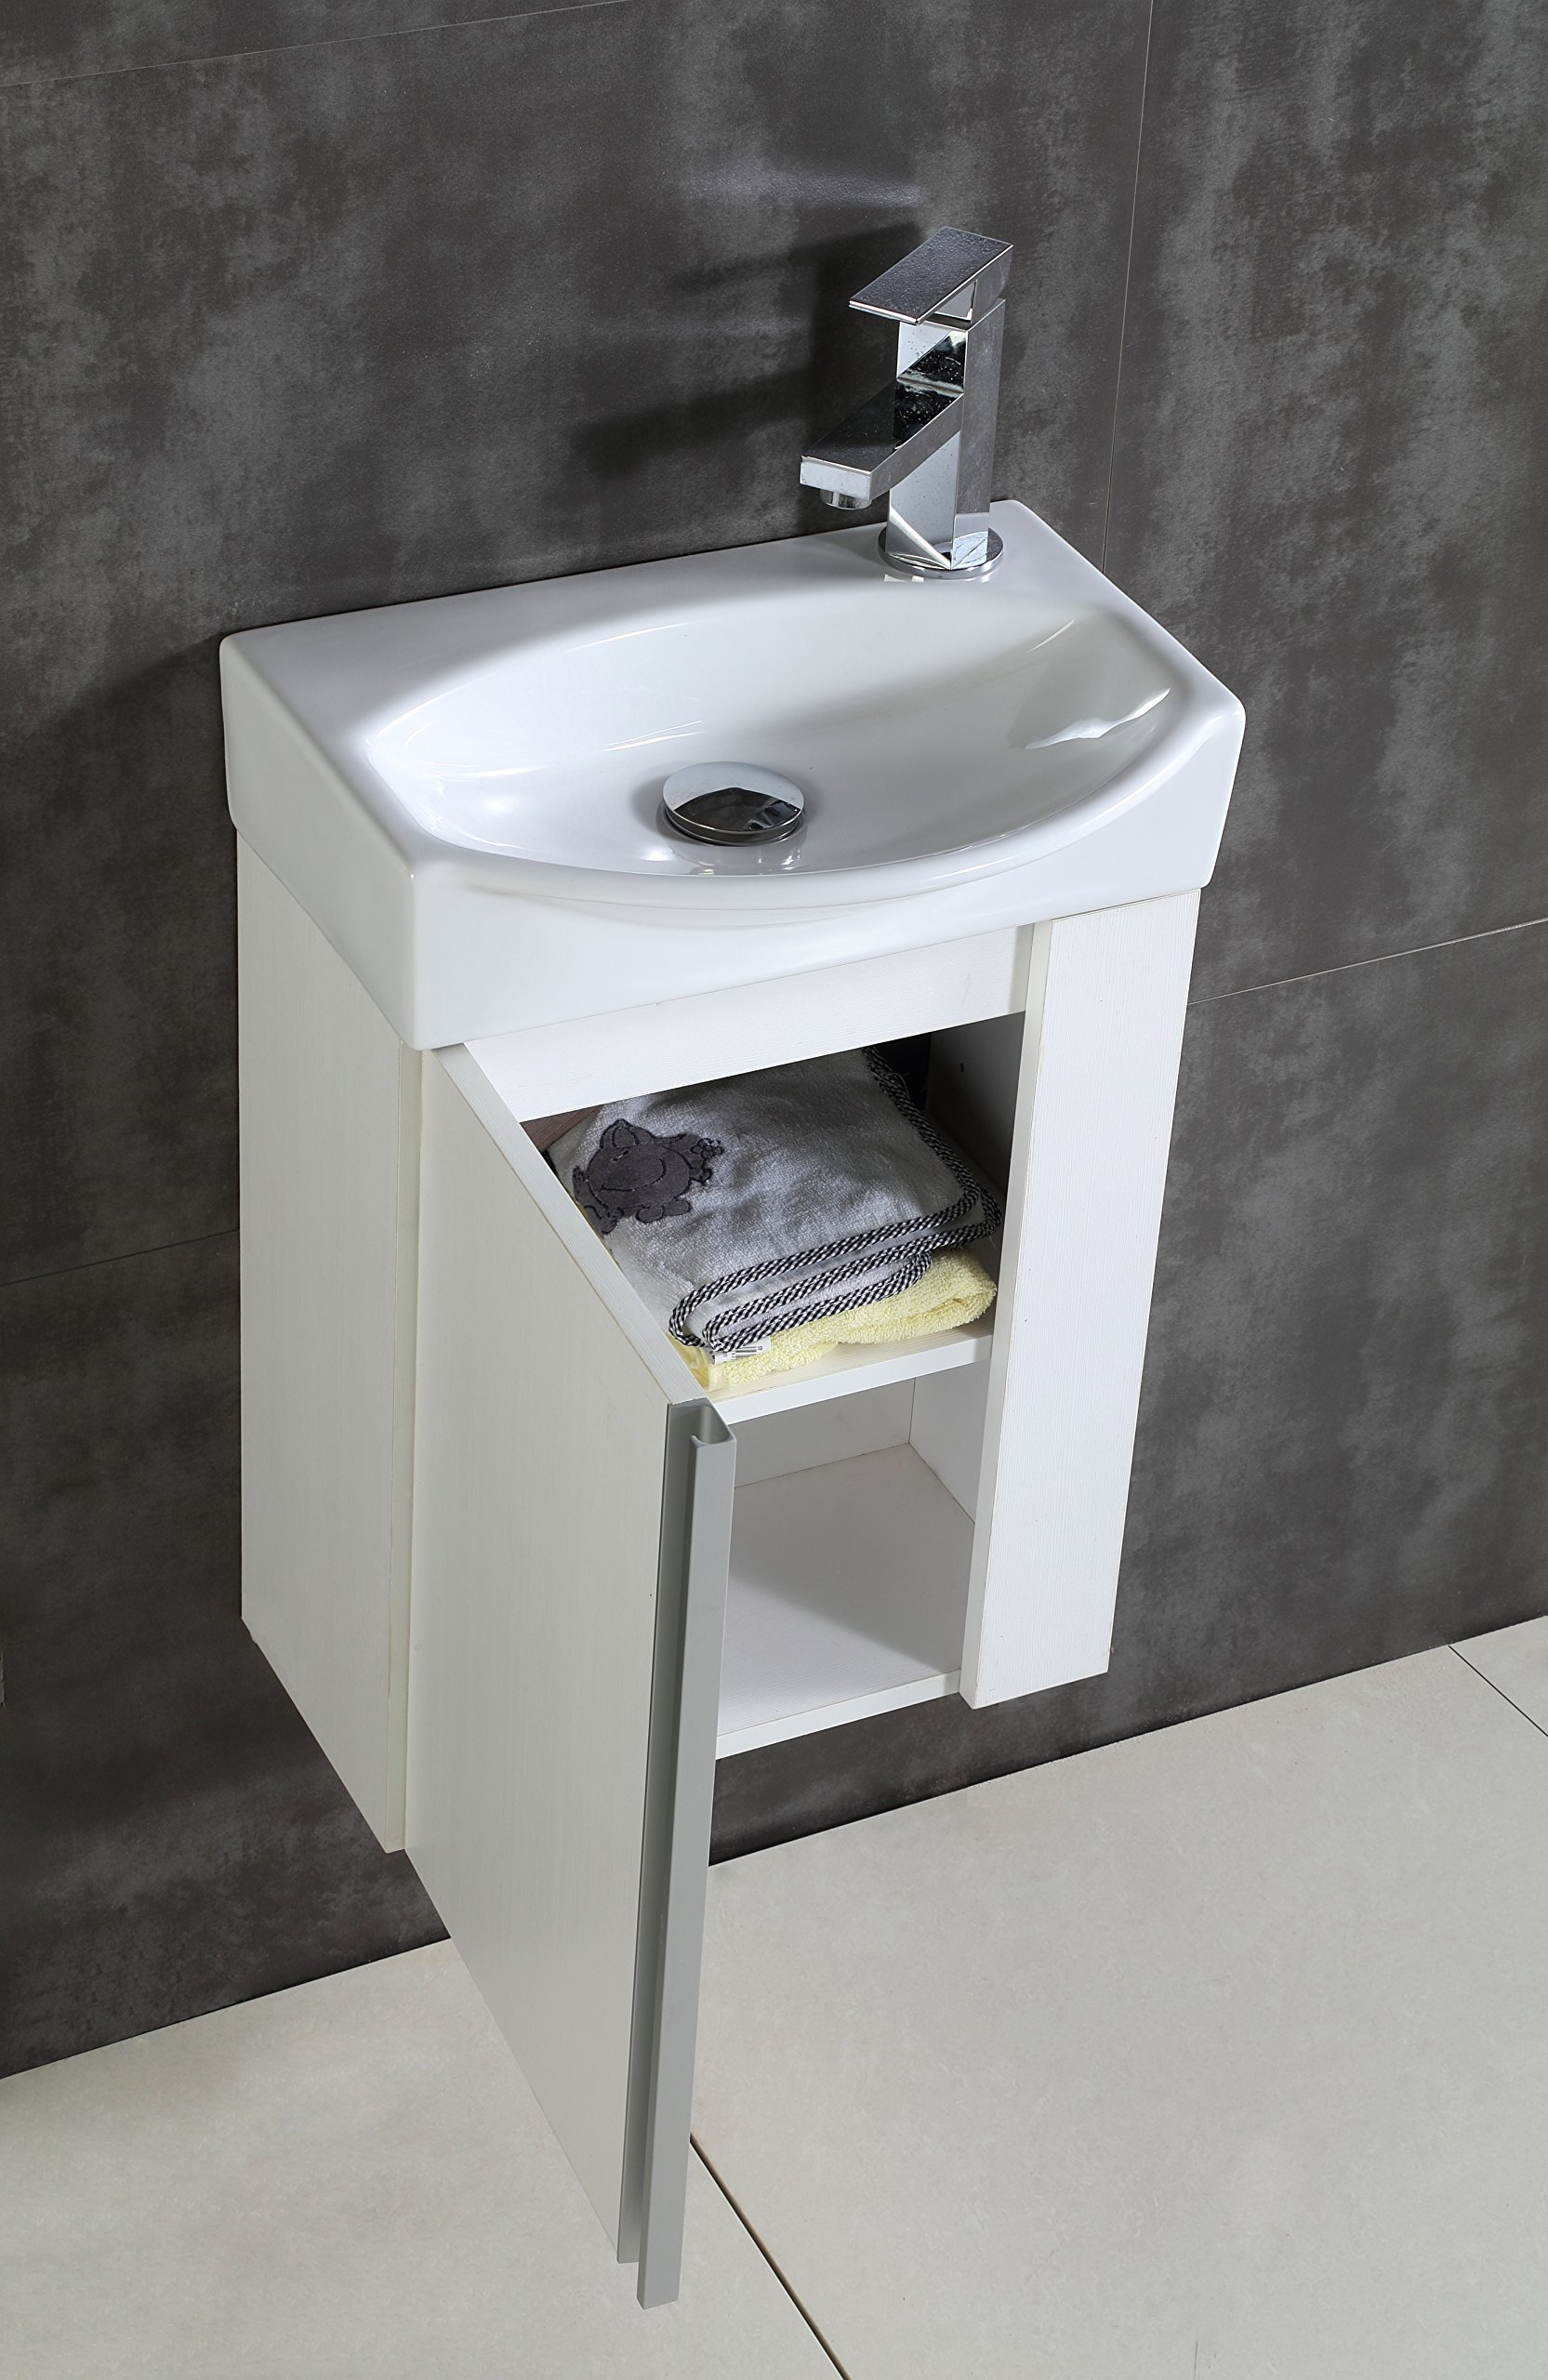 Fine Fixtures Compacto Small Bathroom Vanity Set With Sink -Wall-Hung Cabinet- Sink top, And Mirror Included (White) - COMPACTO VANITY is designed to fit in smaller size bathroom, has enough place to storage your oil and powders, -2 shelves and a single door included- !! Choose one of our 3 beautiful colors BLACK WALNUT, WHITE, GRAY TAUPE. Dimensions of Cabinet with sink top on it- 16 3/8 W x 8 5/8 D x 22 3/4 H. Wall hung bathroom vanity cabinet, Vitreous China sink and mirror included. (Medicine cabinet Not included). - bathroom-vanities, bathroom-fixtures-hardware, bathroom - 91r%2BgHah5wL -